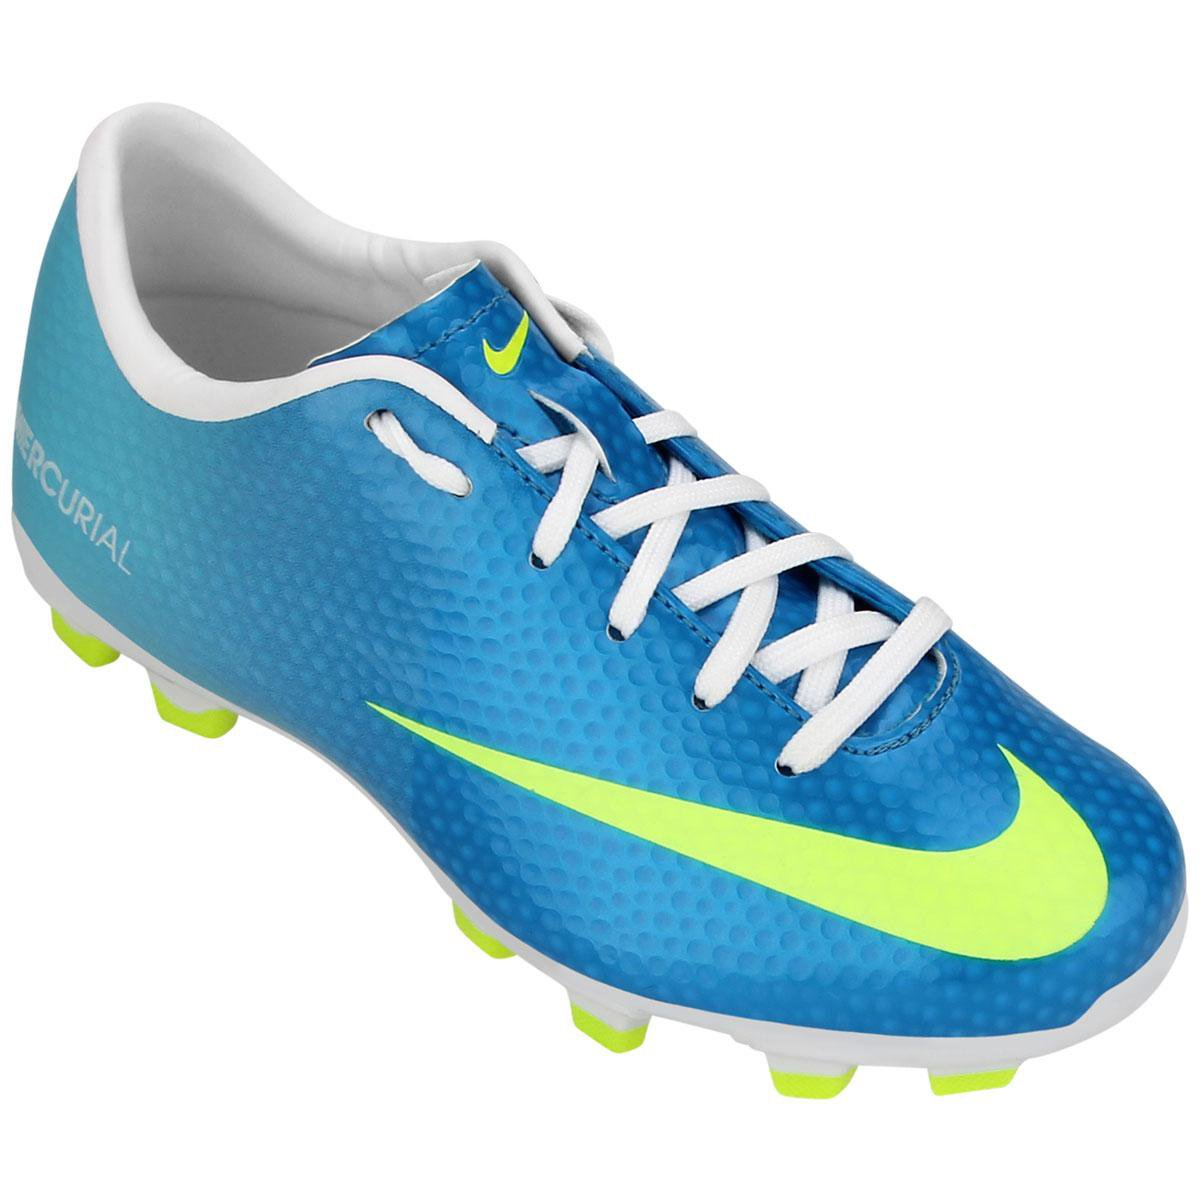 869c51e249a99 purchase chuteira nike mercurial victory 4 fg emb infantil compre agora  netshoes 266fb 76637